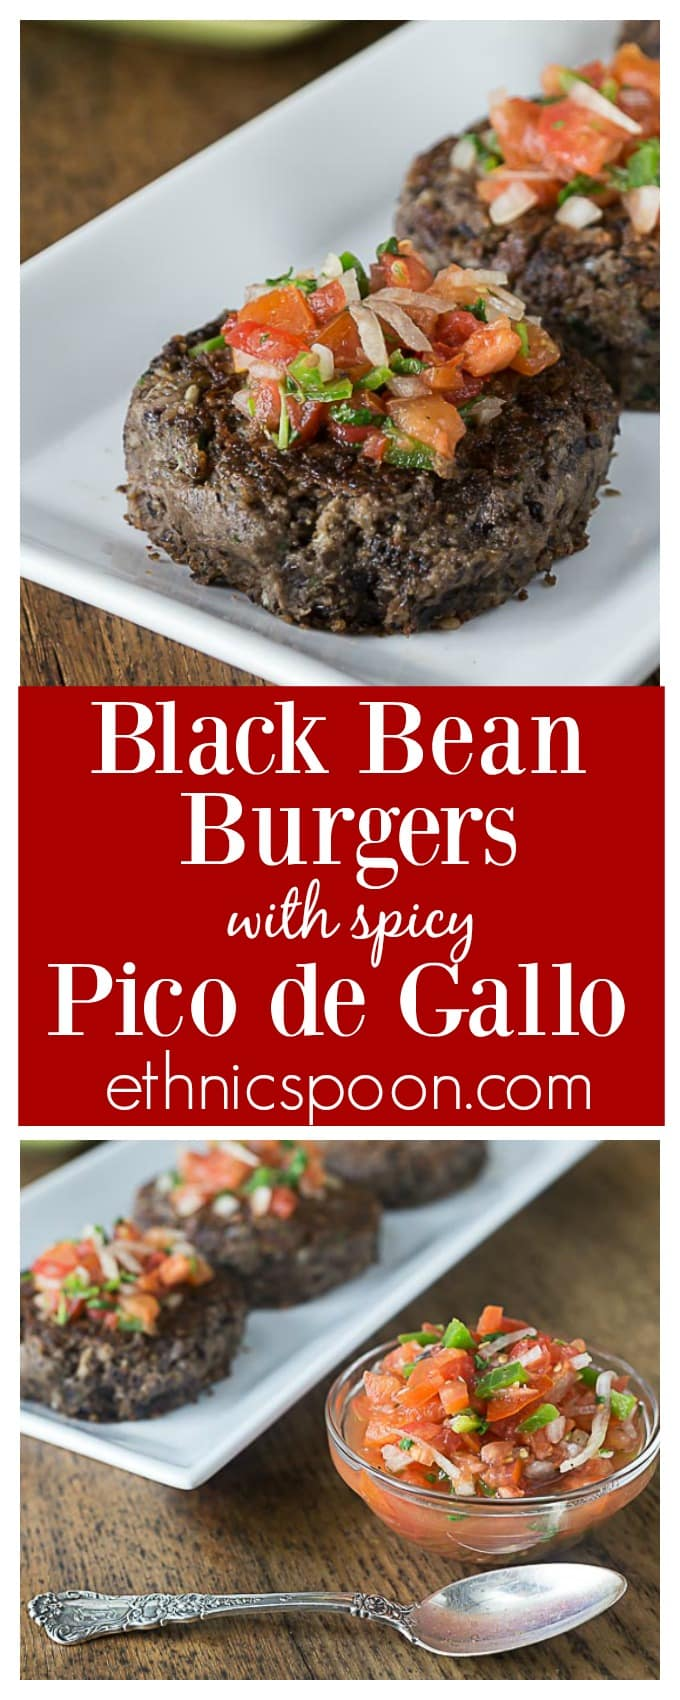 Black bean burgers with pico de gallo. Blend these up quick in the food processor! Vegan, Vegetarian and gluten free black bean burgers with my favorite spicy pico de gallo! Love these! | ethnicspoon.com  #veganburgers #veganlatinfood #latinburgers